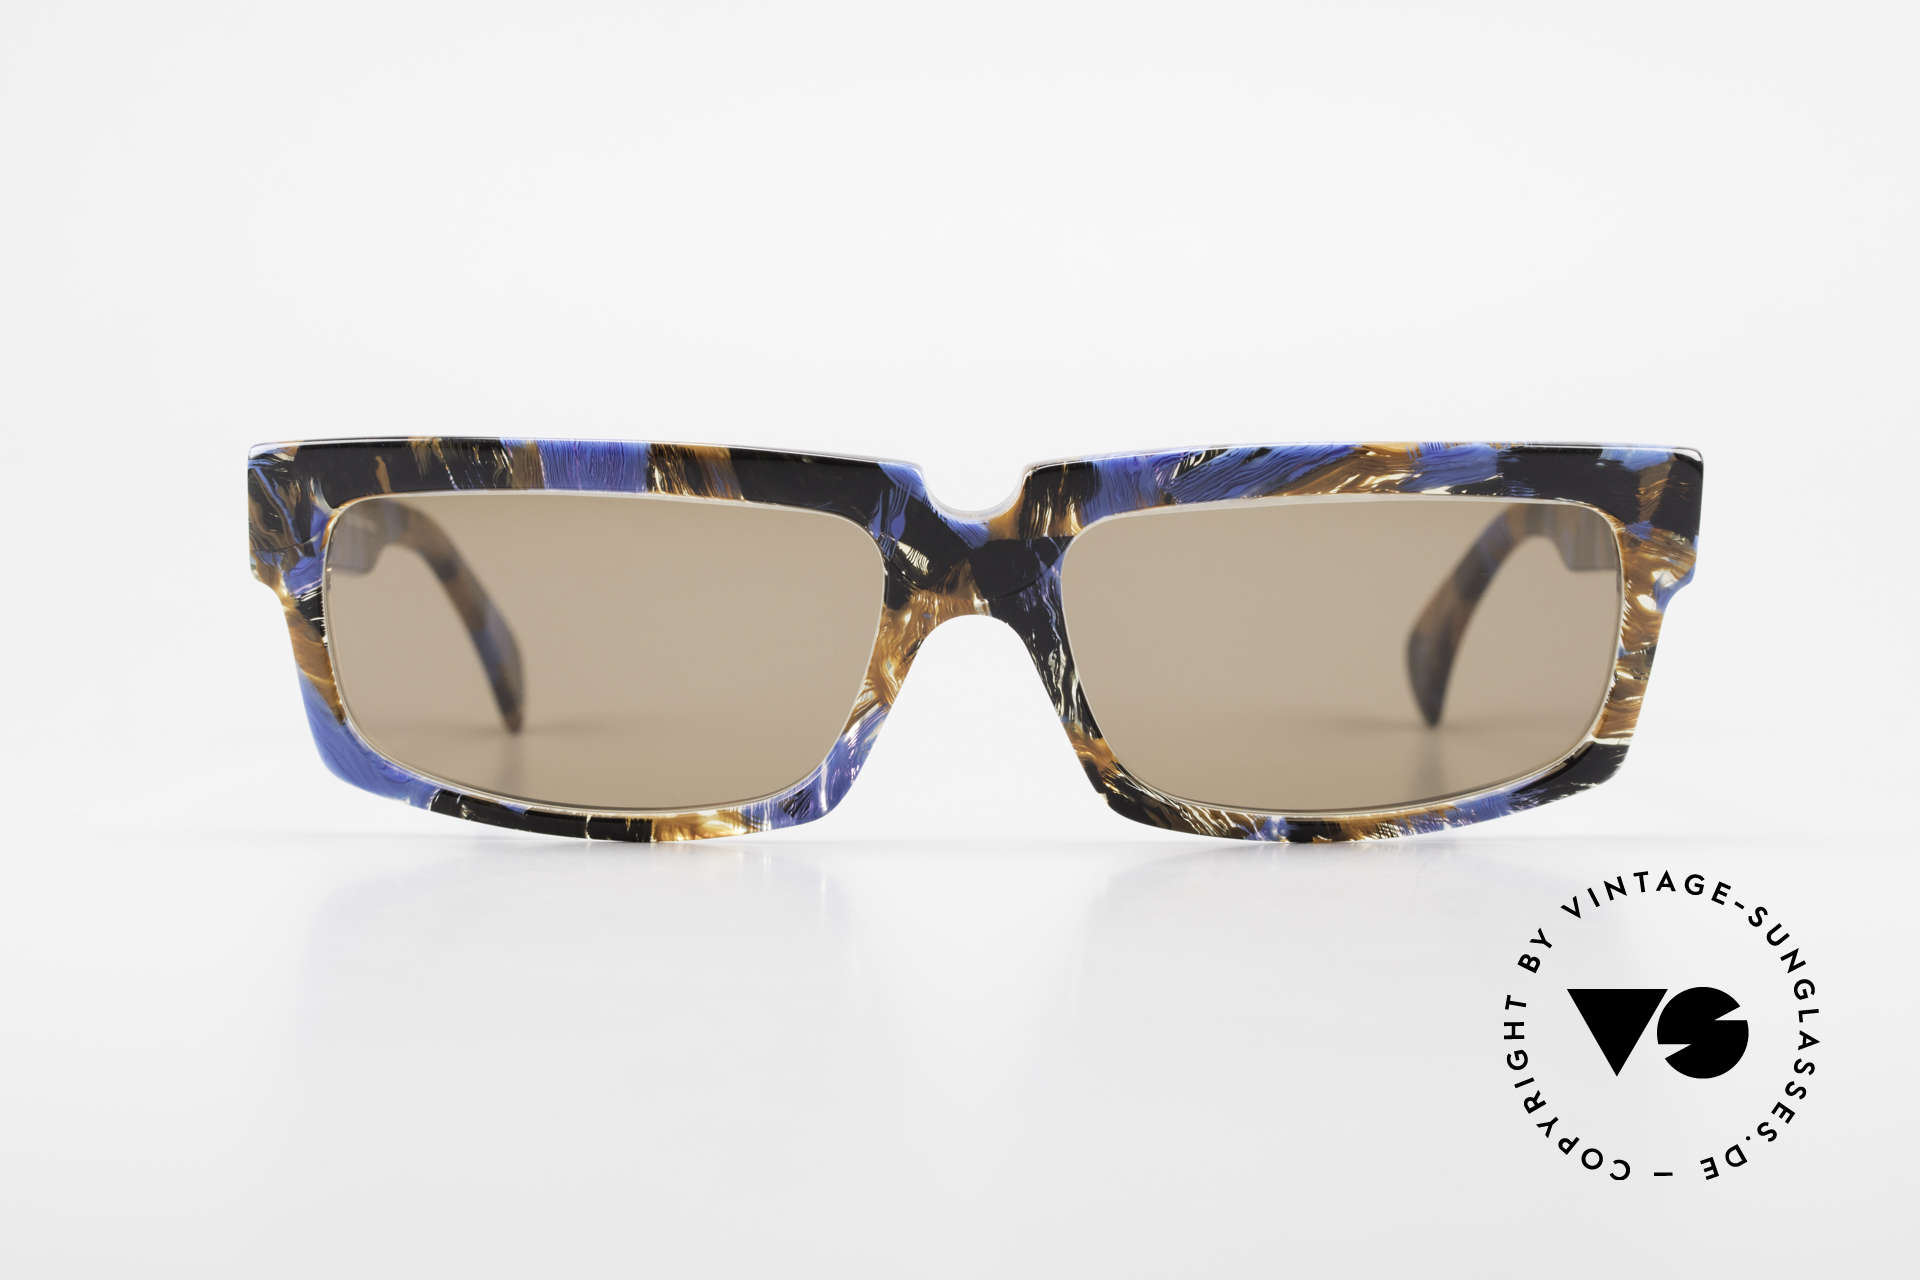 Alain Mikli 706 / 395 XL 80's Designer Sunglasses, 80's shades with very interesting design / coloring, Made for Men